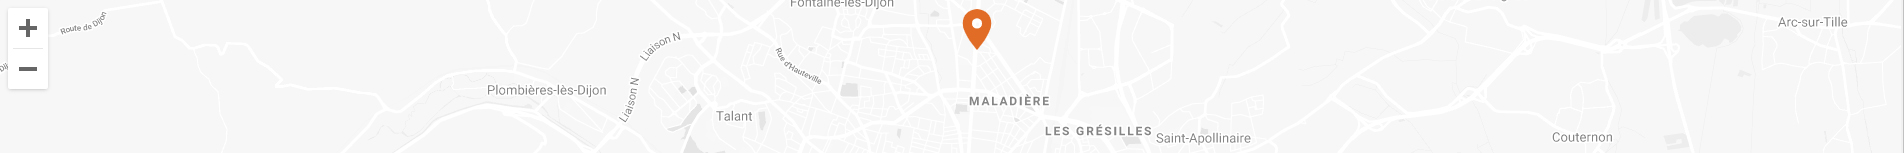 map-top